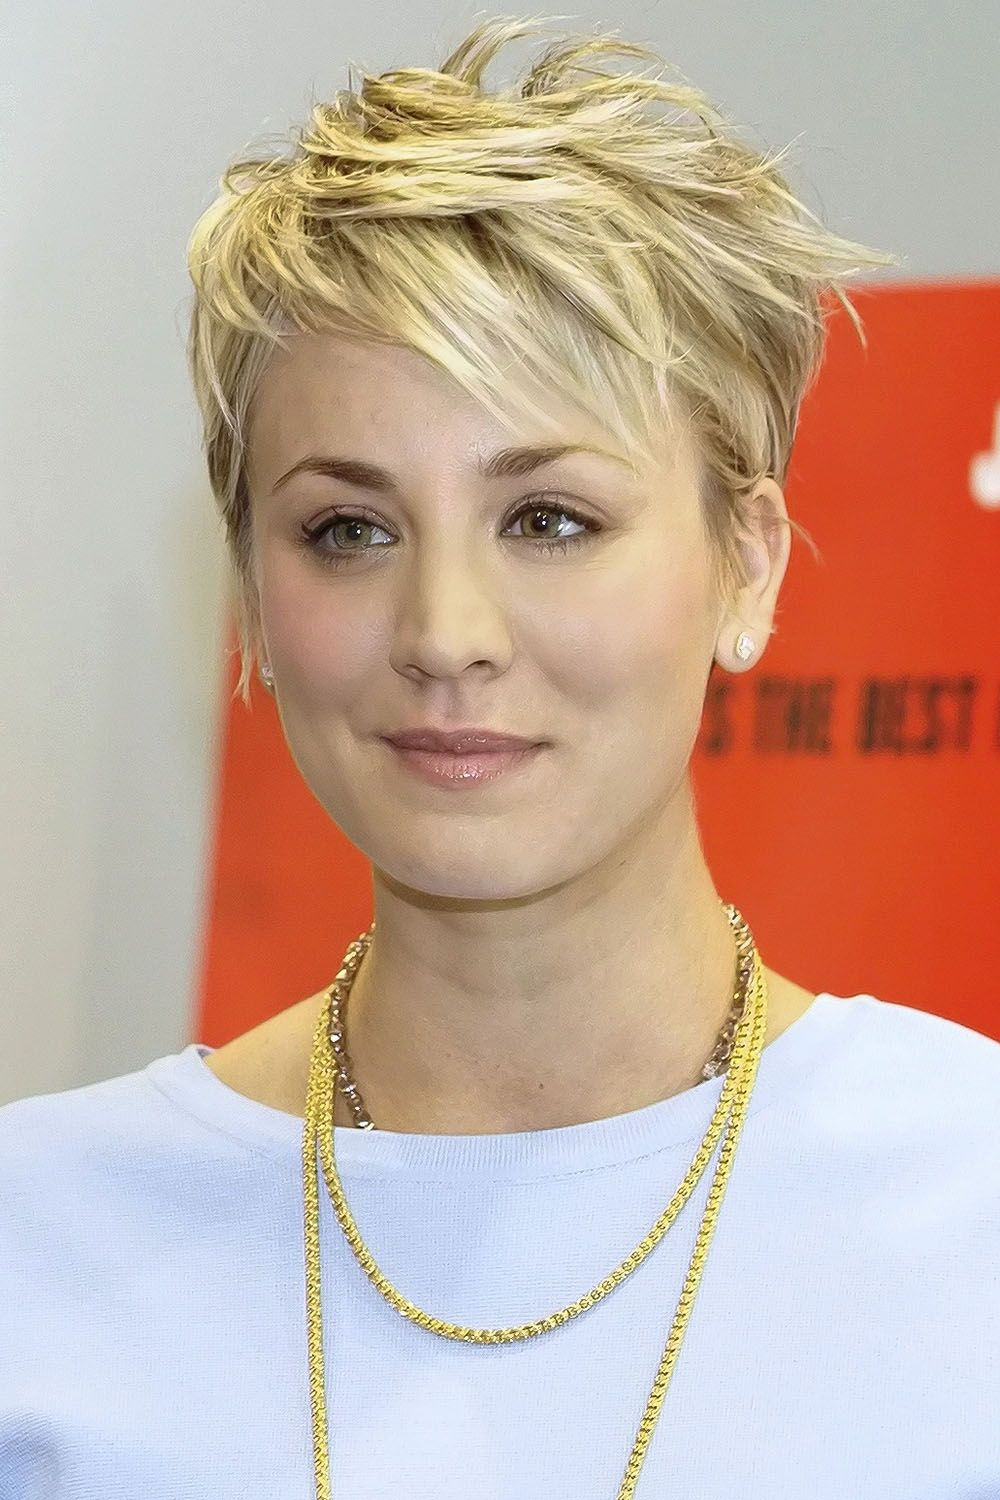 Our 10 Favorite Haircuts for Spring | Kaley cuoco, Pixies ...